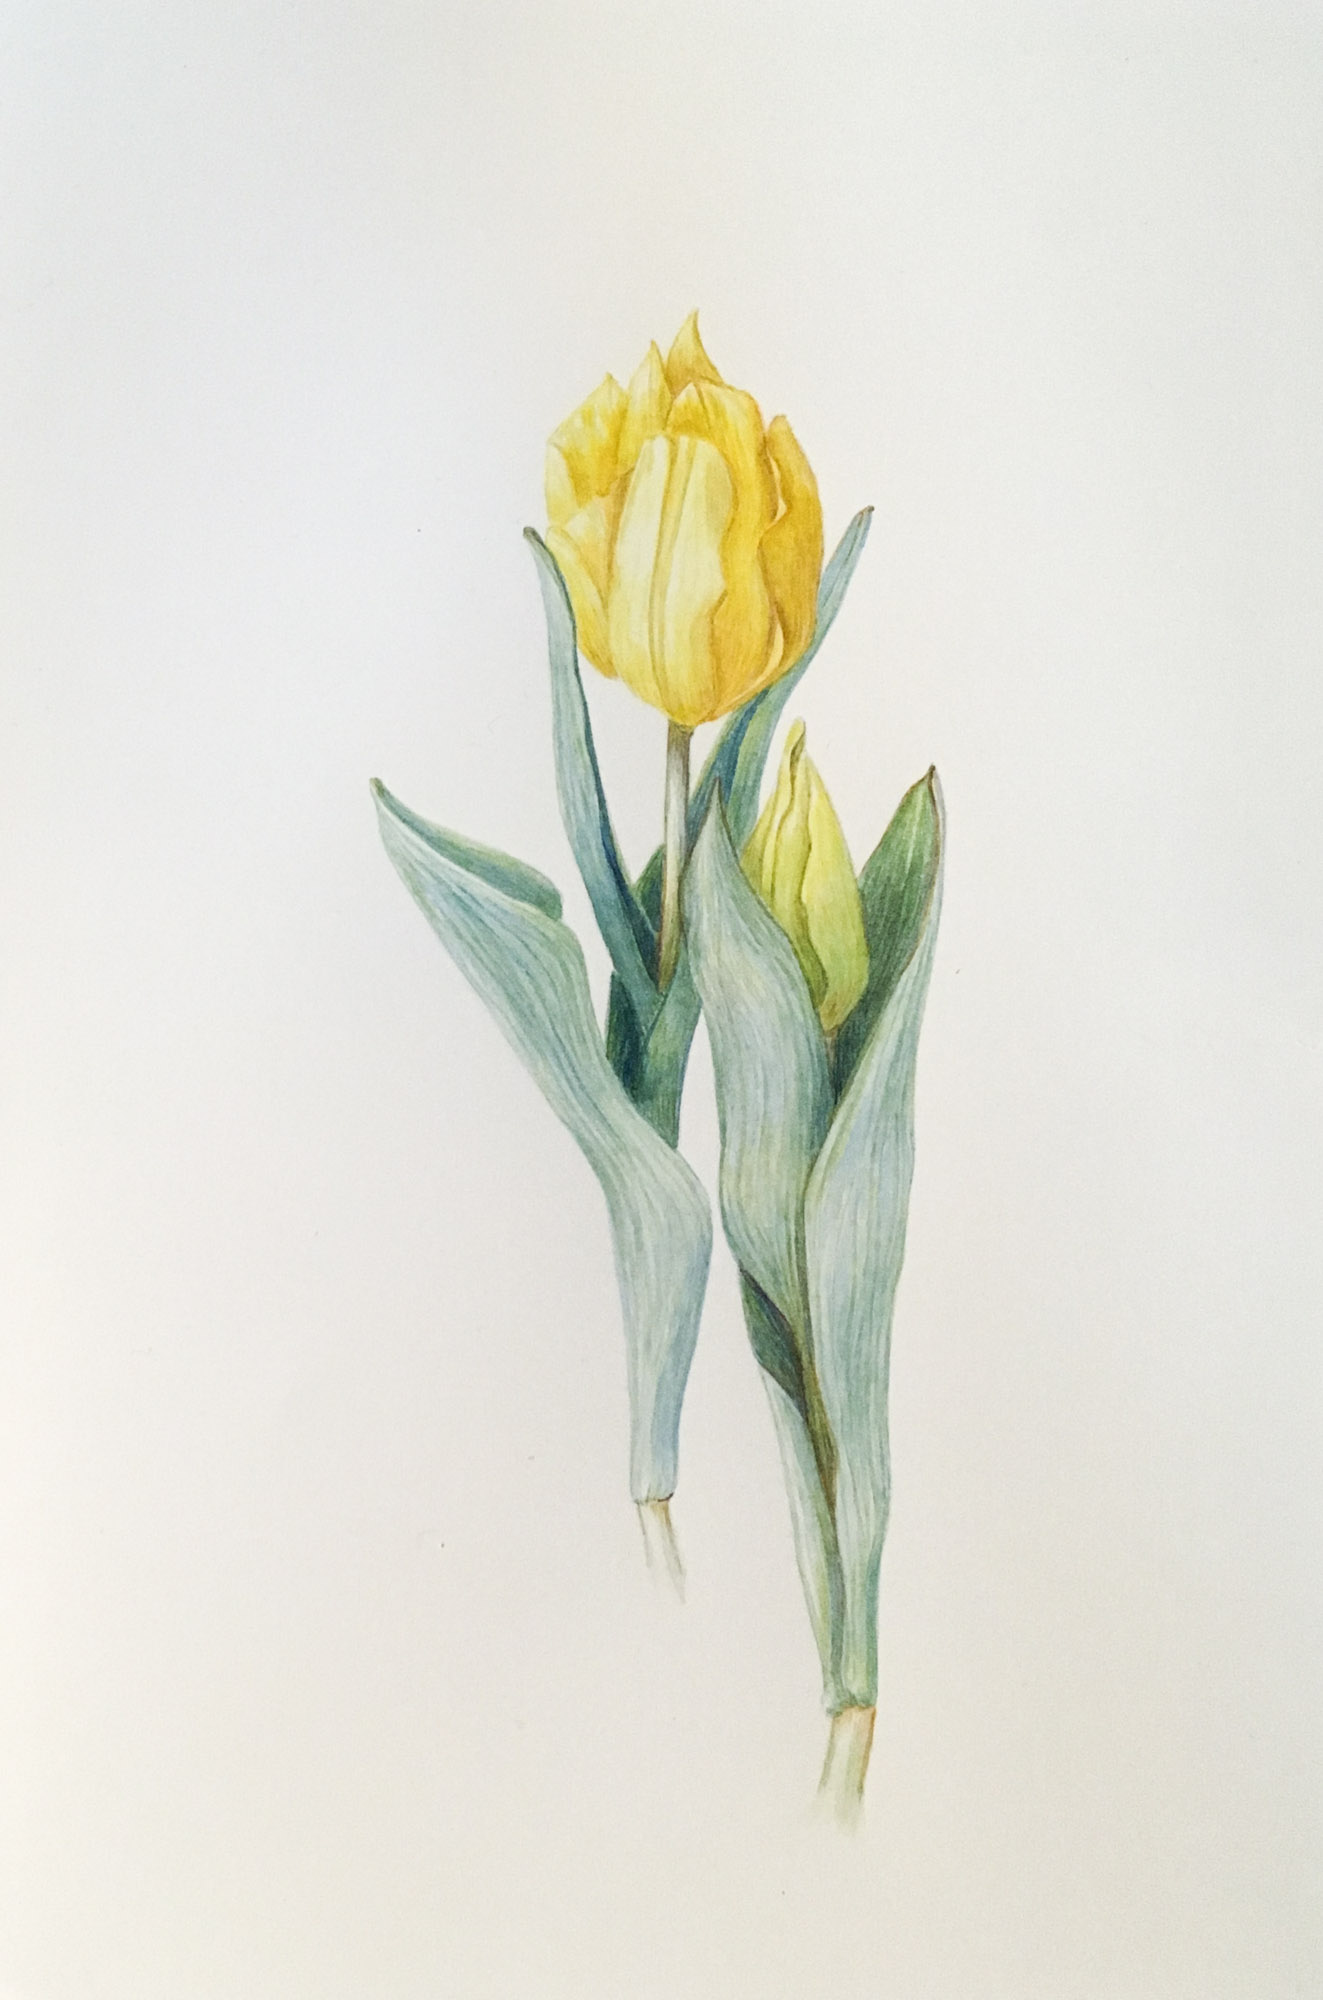 "Tulipa, 71/2"" x 11"", watercolor on Arches"